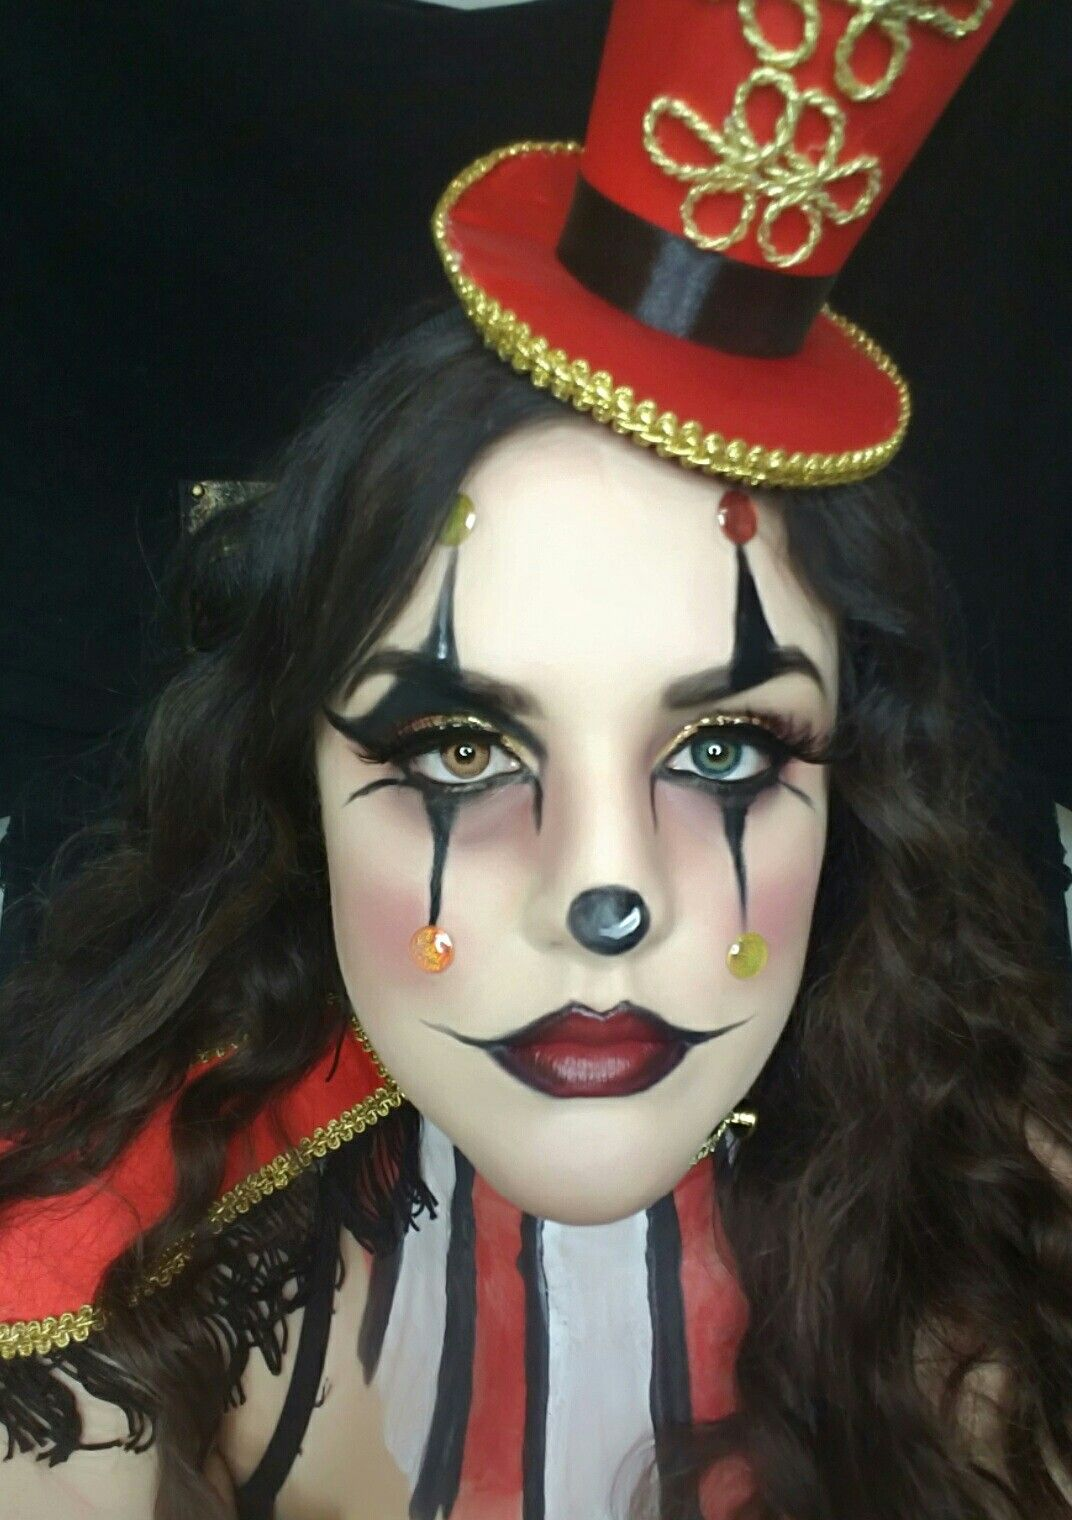 ringmaster halloween makeup tutorial how to clown creepy ideas face paint body paint. Black Bedroom Furniture Sets. Home Design Ideas